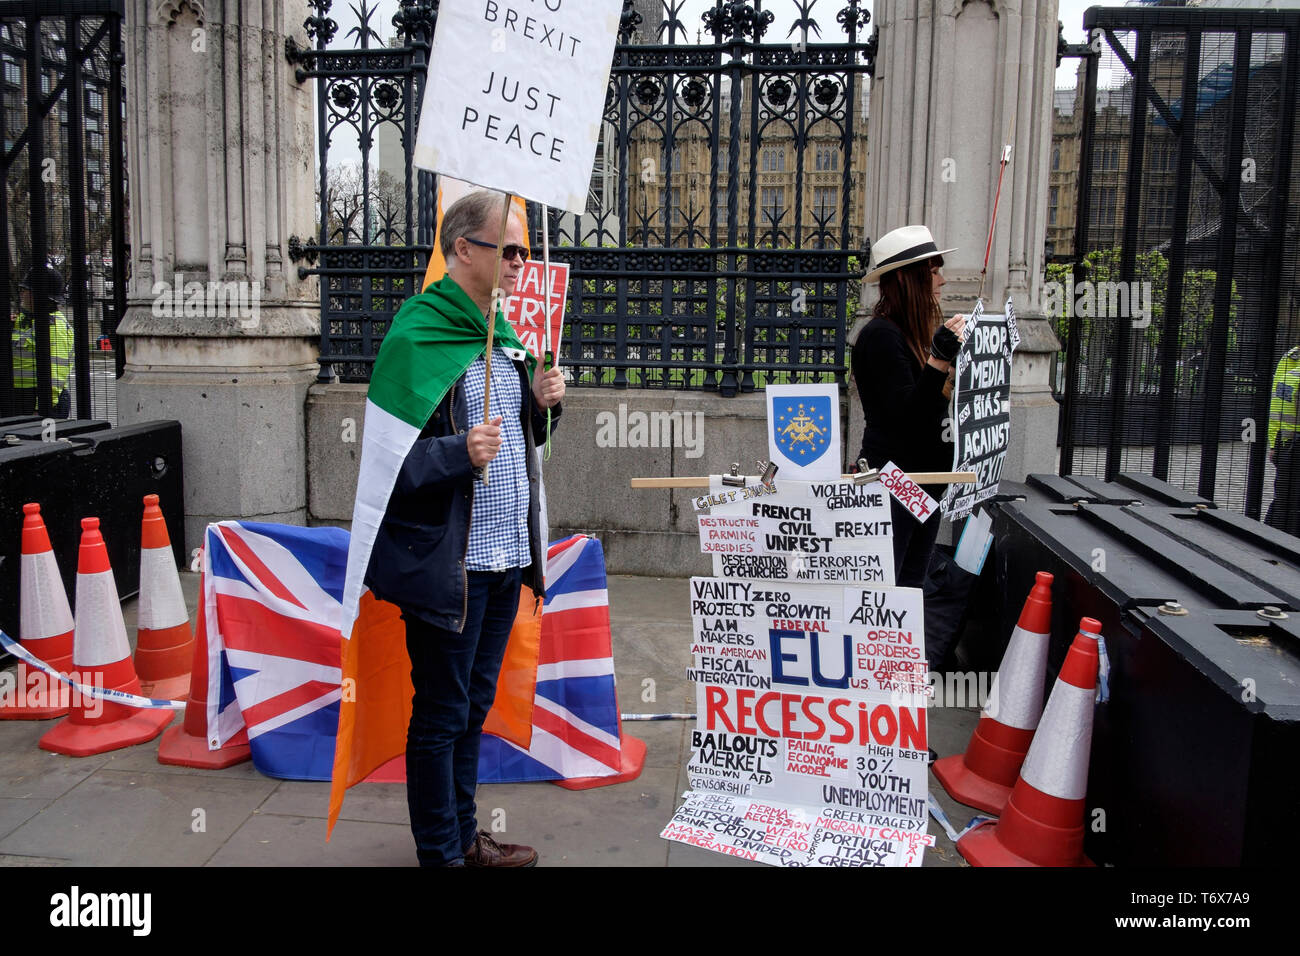 Pro Brexit  along with Remain protester outside Houses of Parliament, Westminster, London, UK. - Stock Image